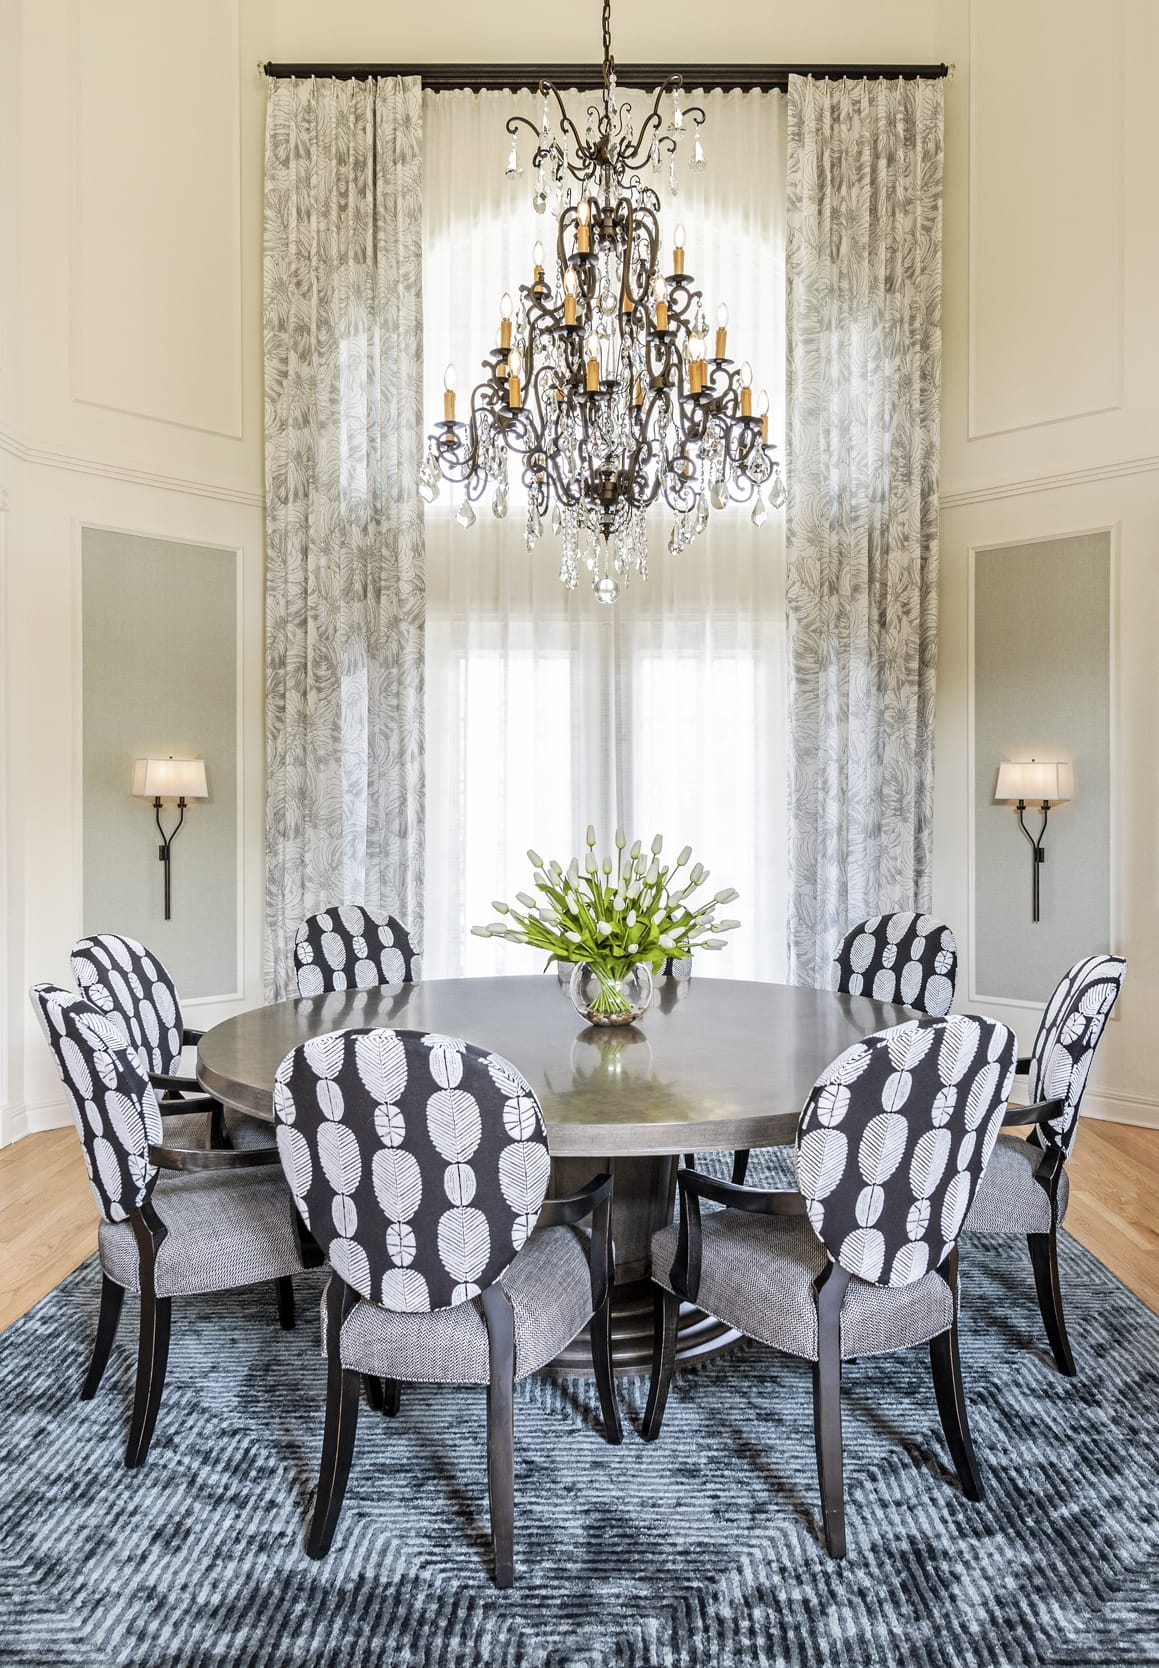 Dinning Table Black Feather Pattern Upholstered Chairs